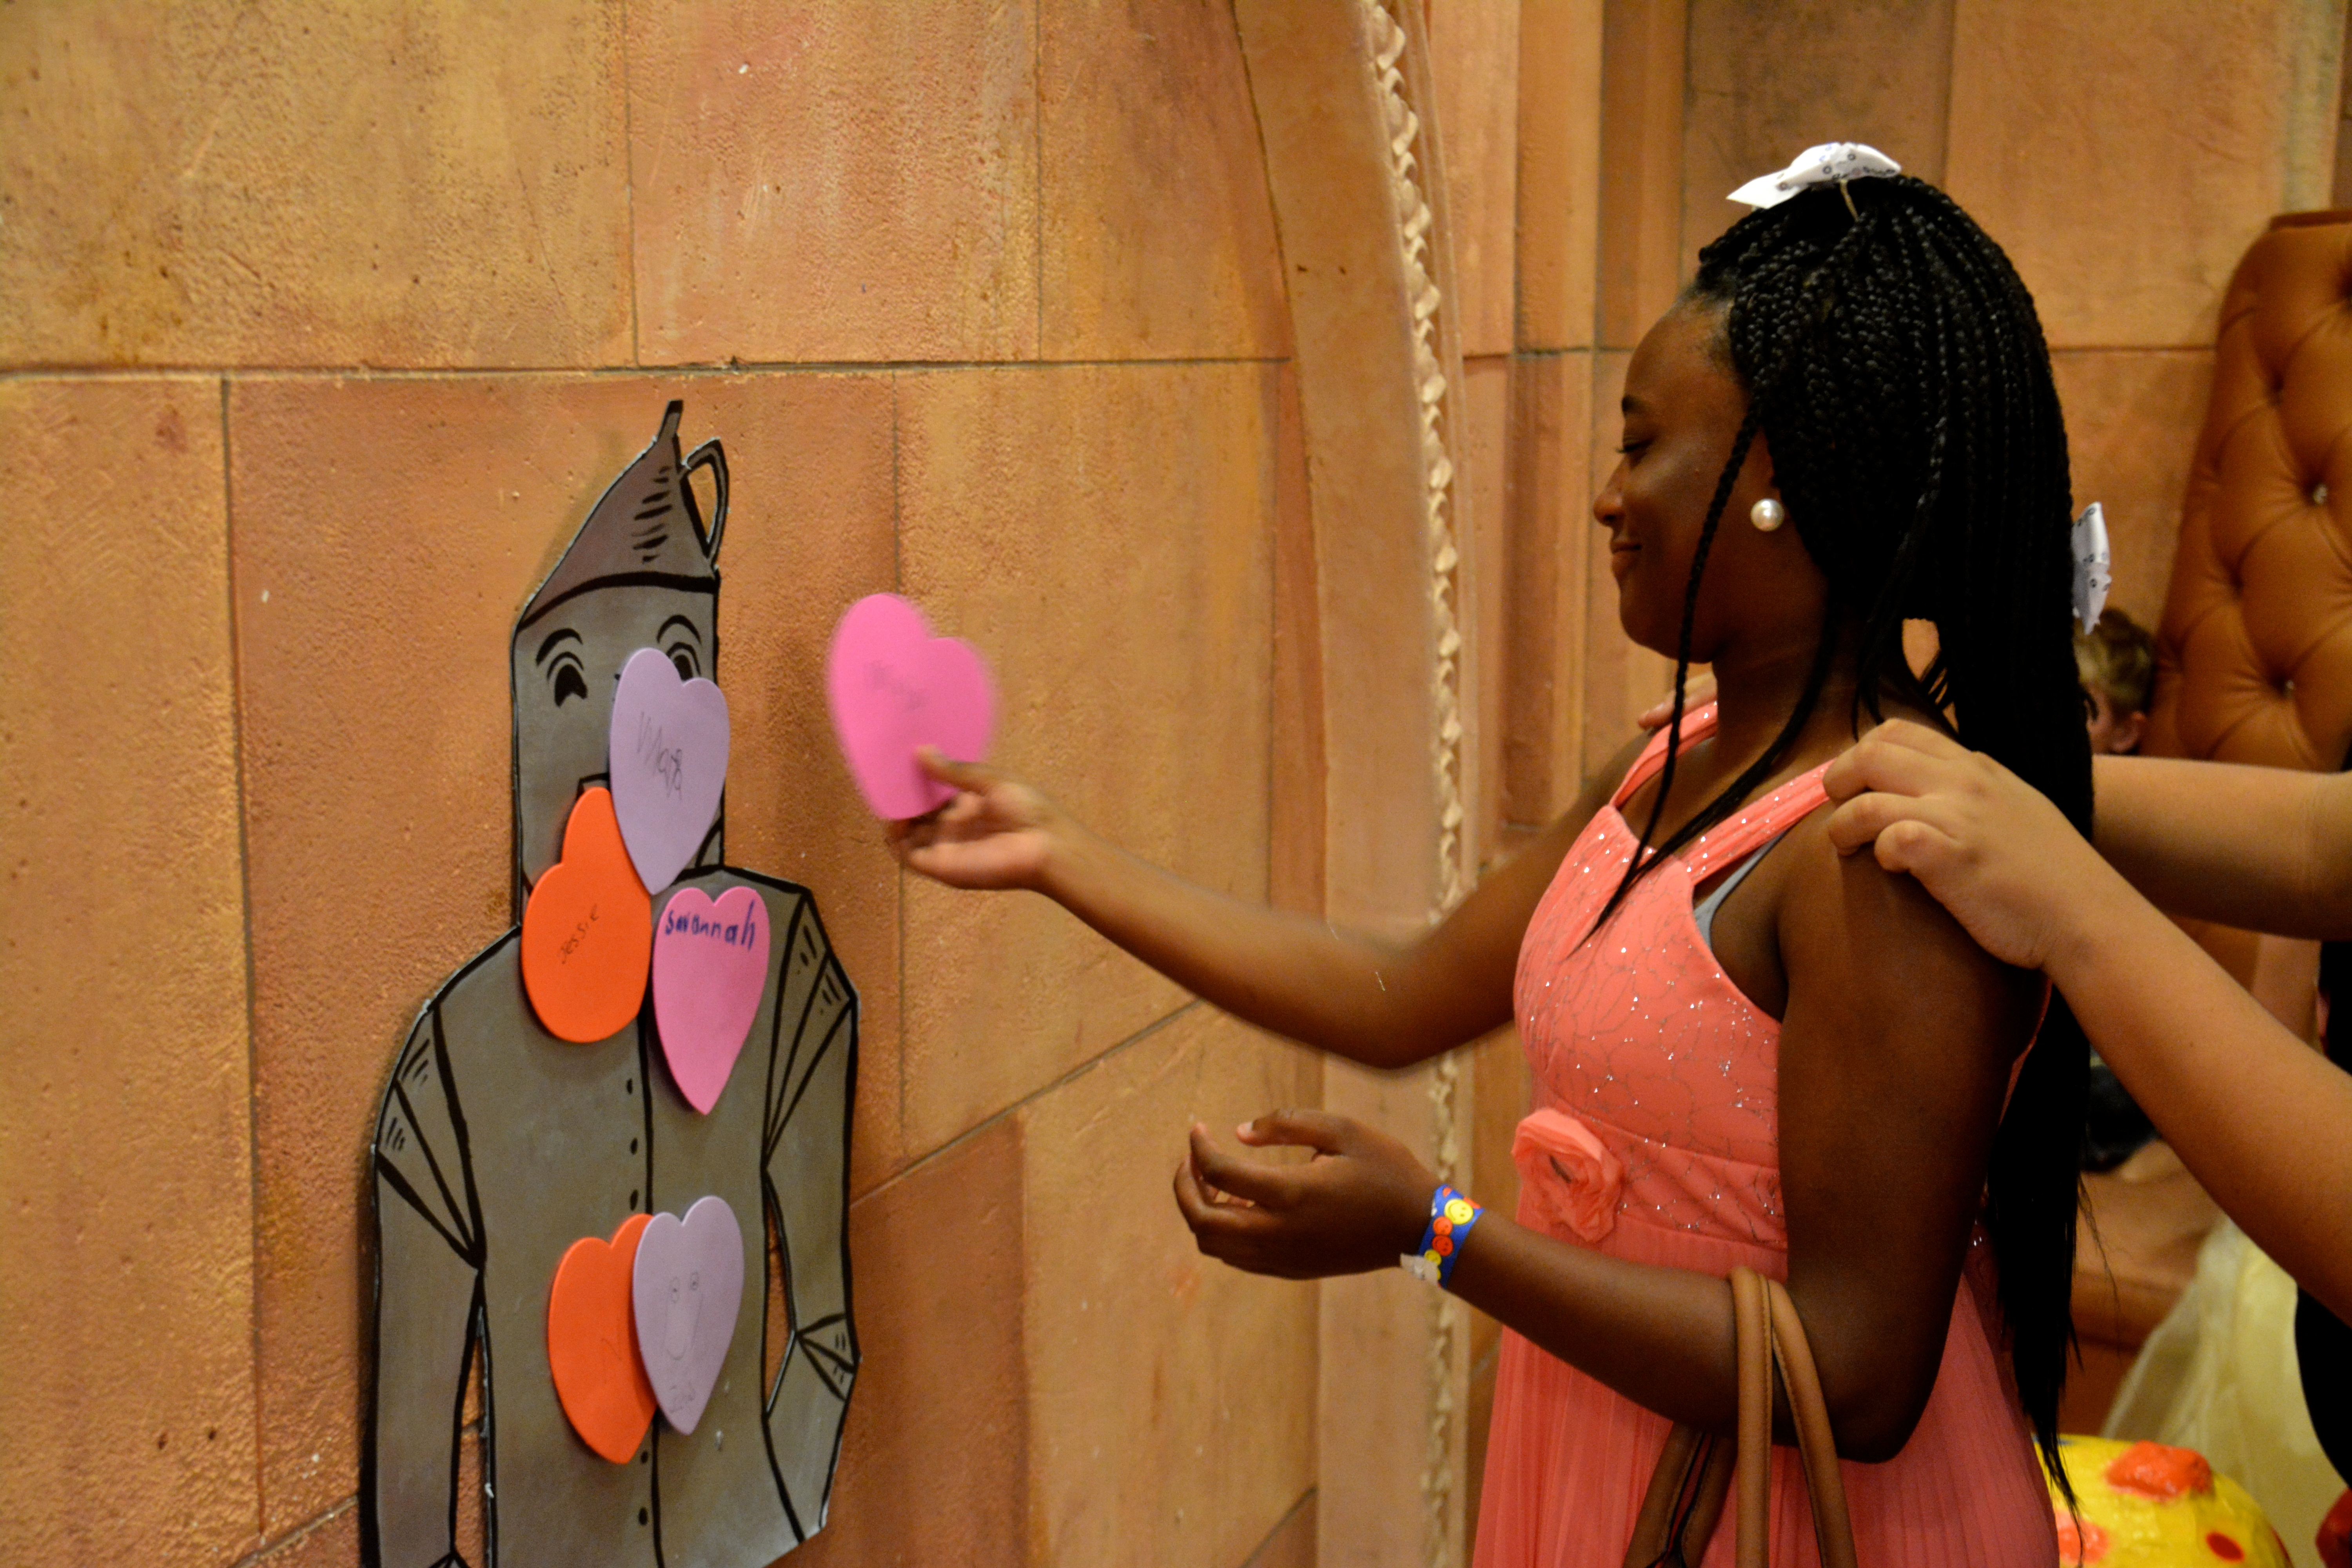 PIN THE HEART ON THE TINMAN